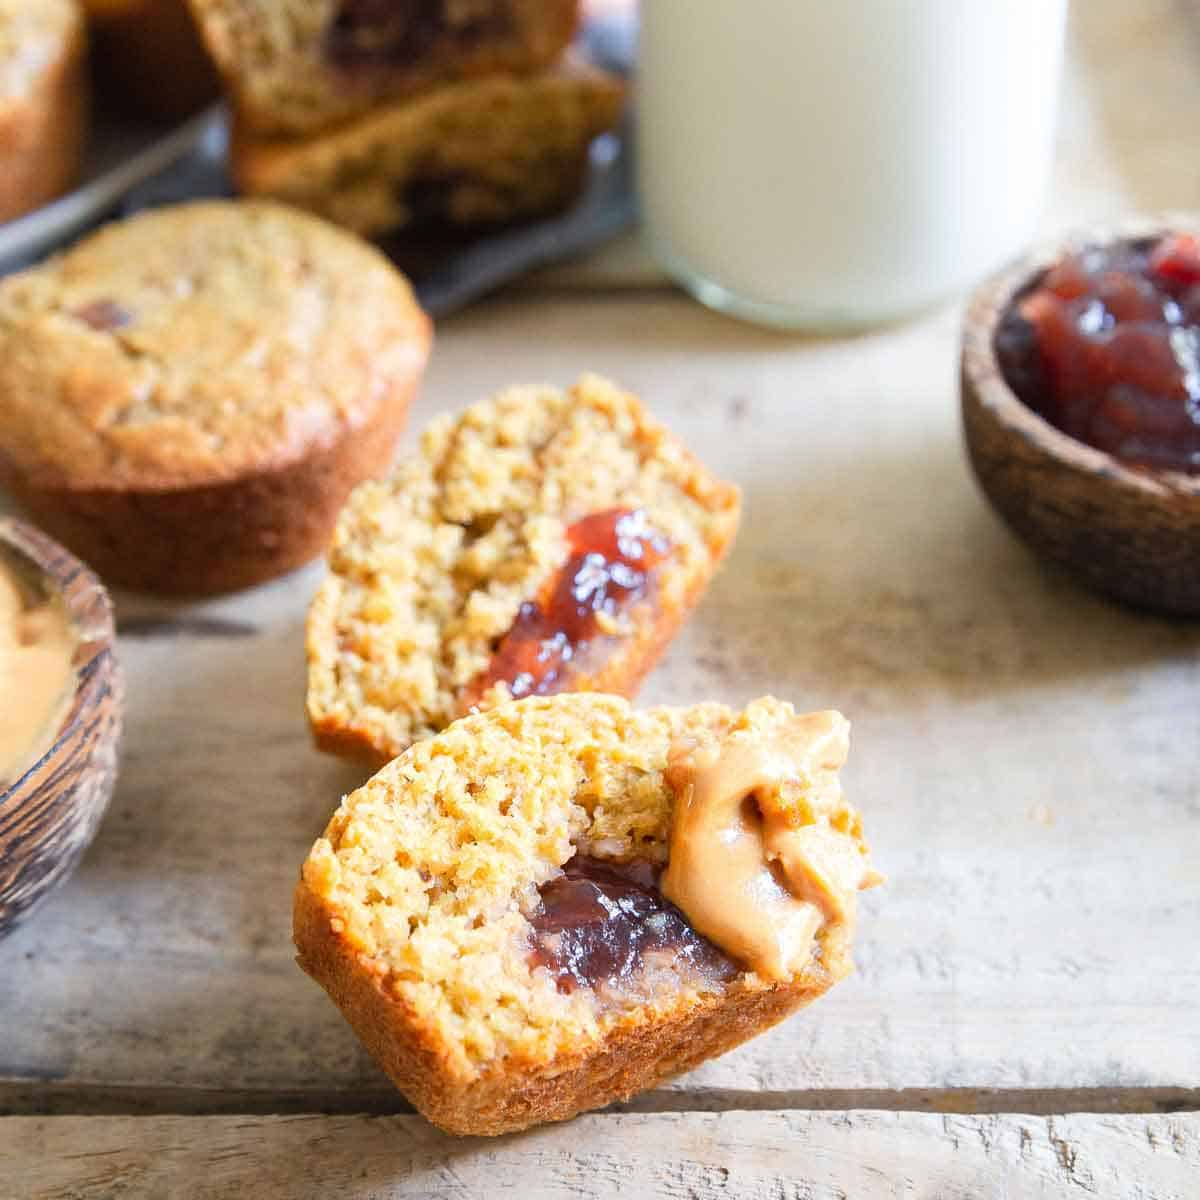 With a tender crumb texture, slightly sweet peanut butter flavor and a jelly center, these pb&j muffins are a winner!